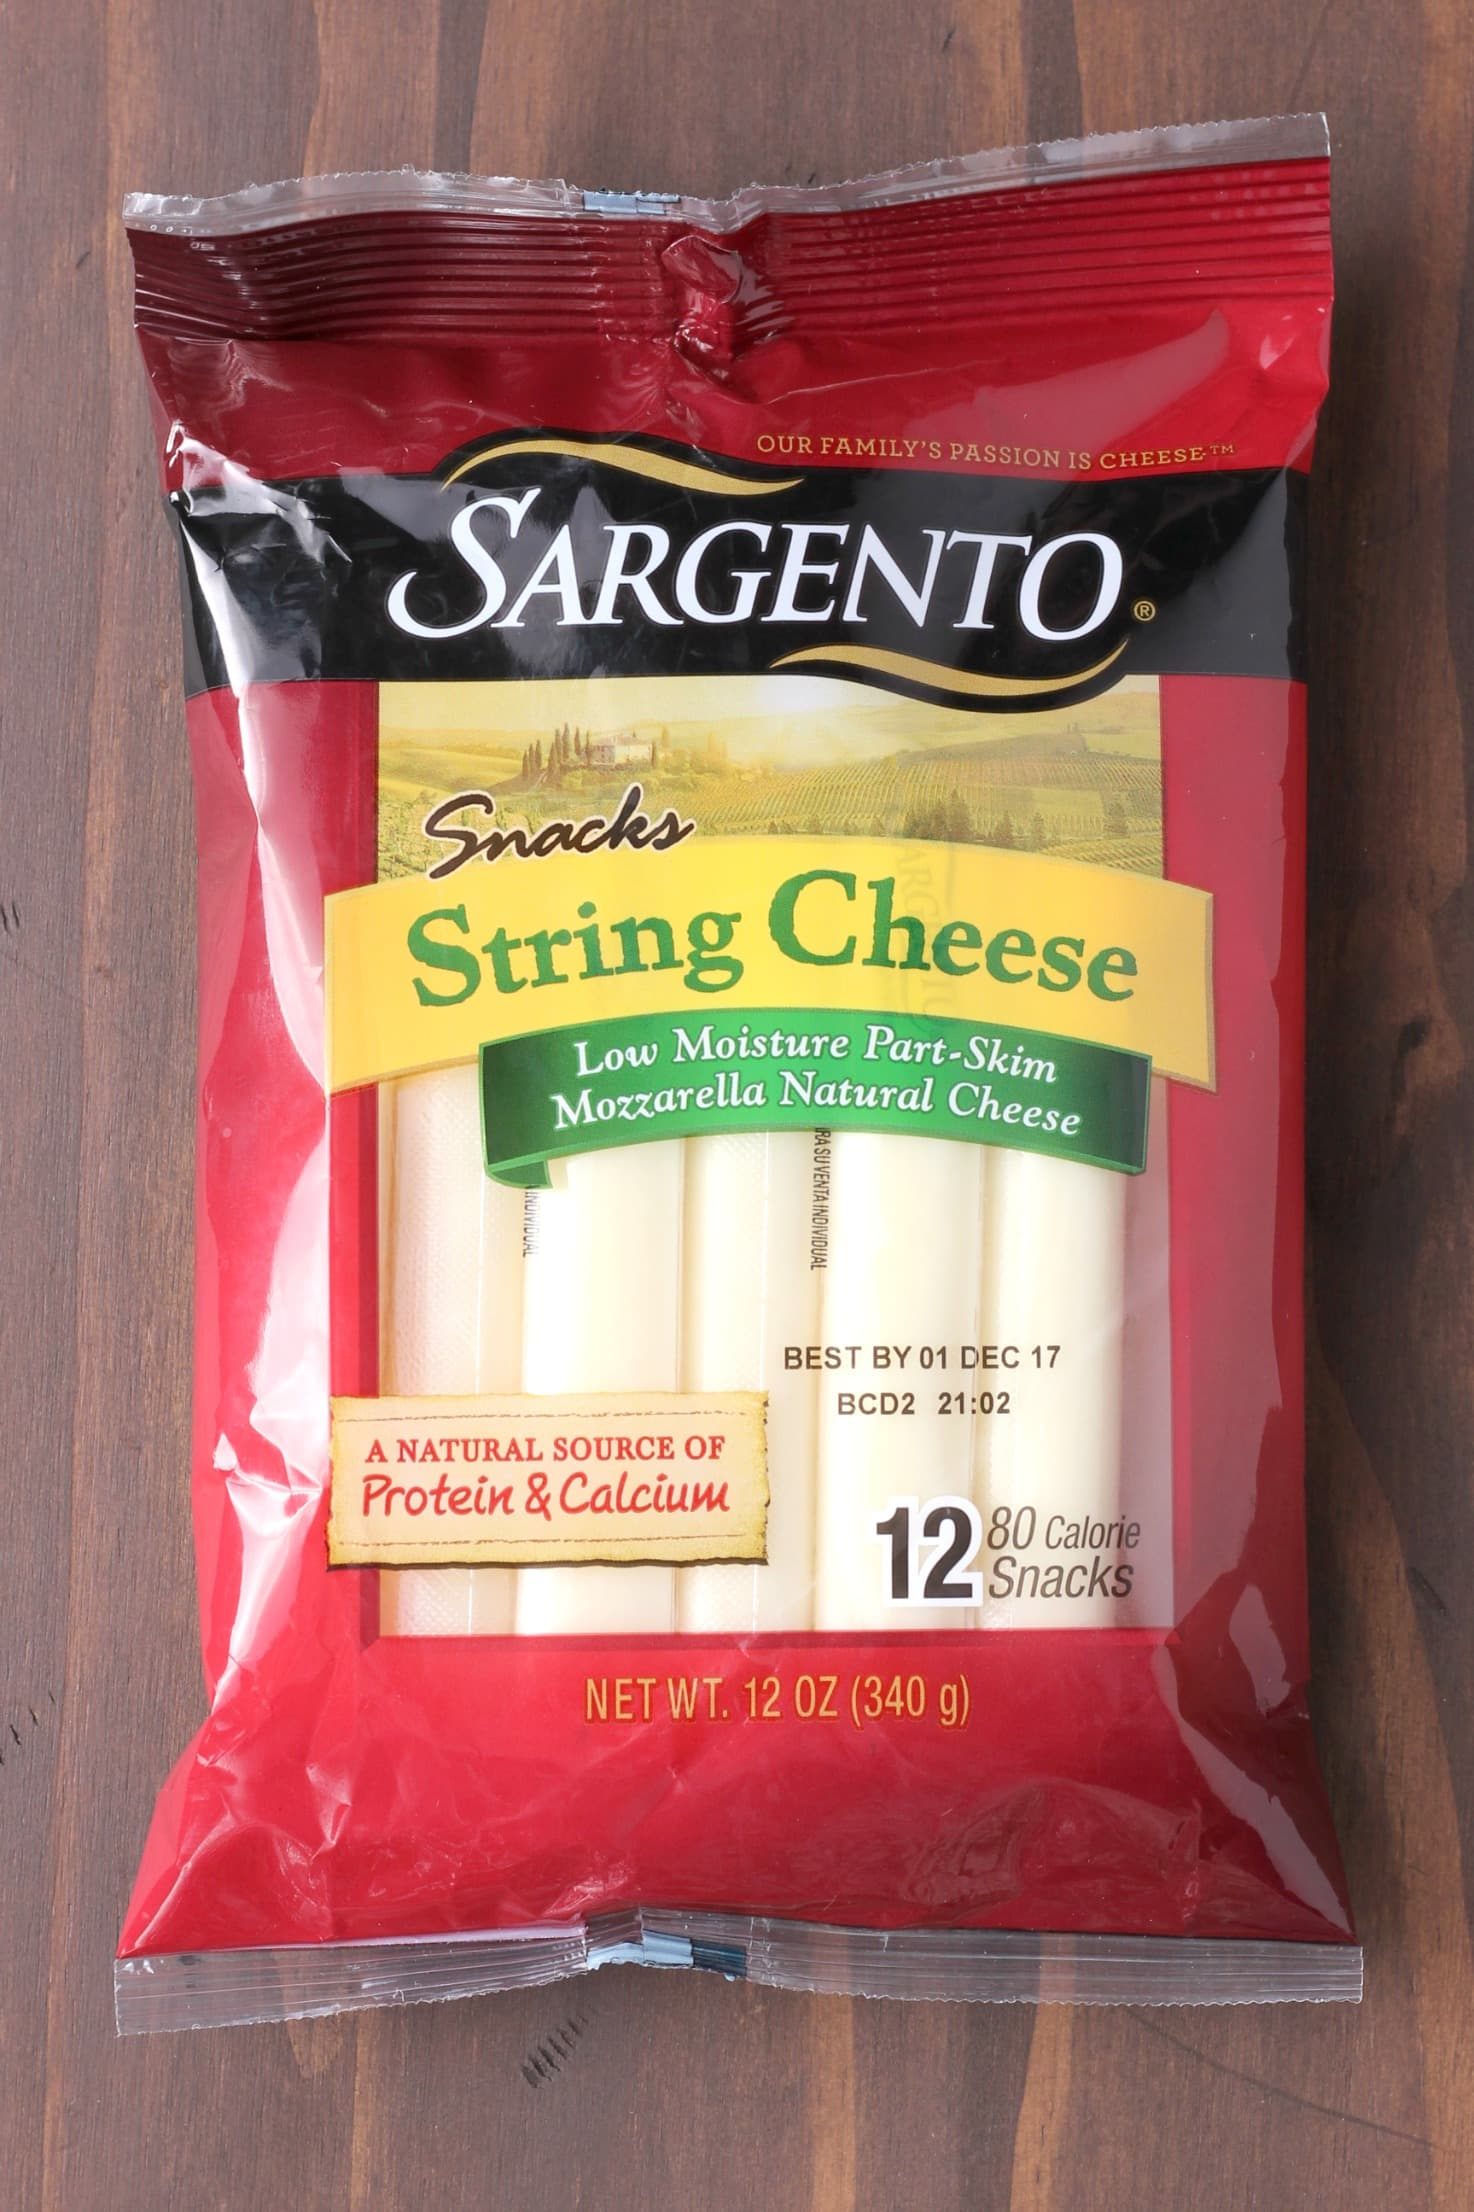 Sargento Mozzarella String Cheese